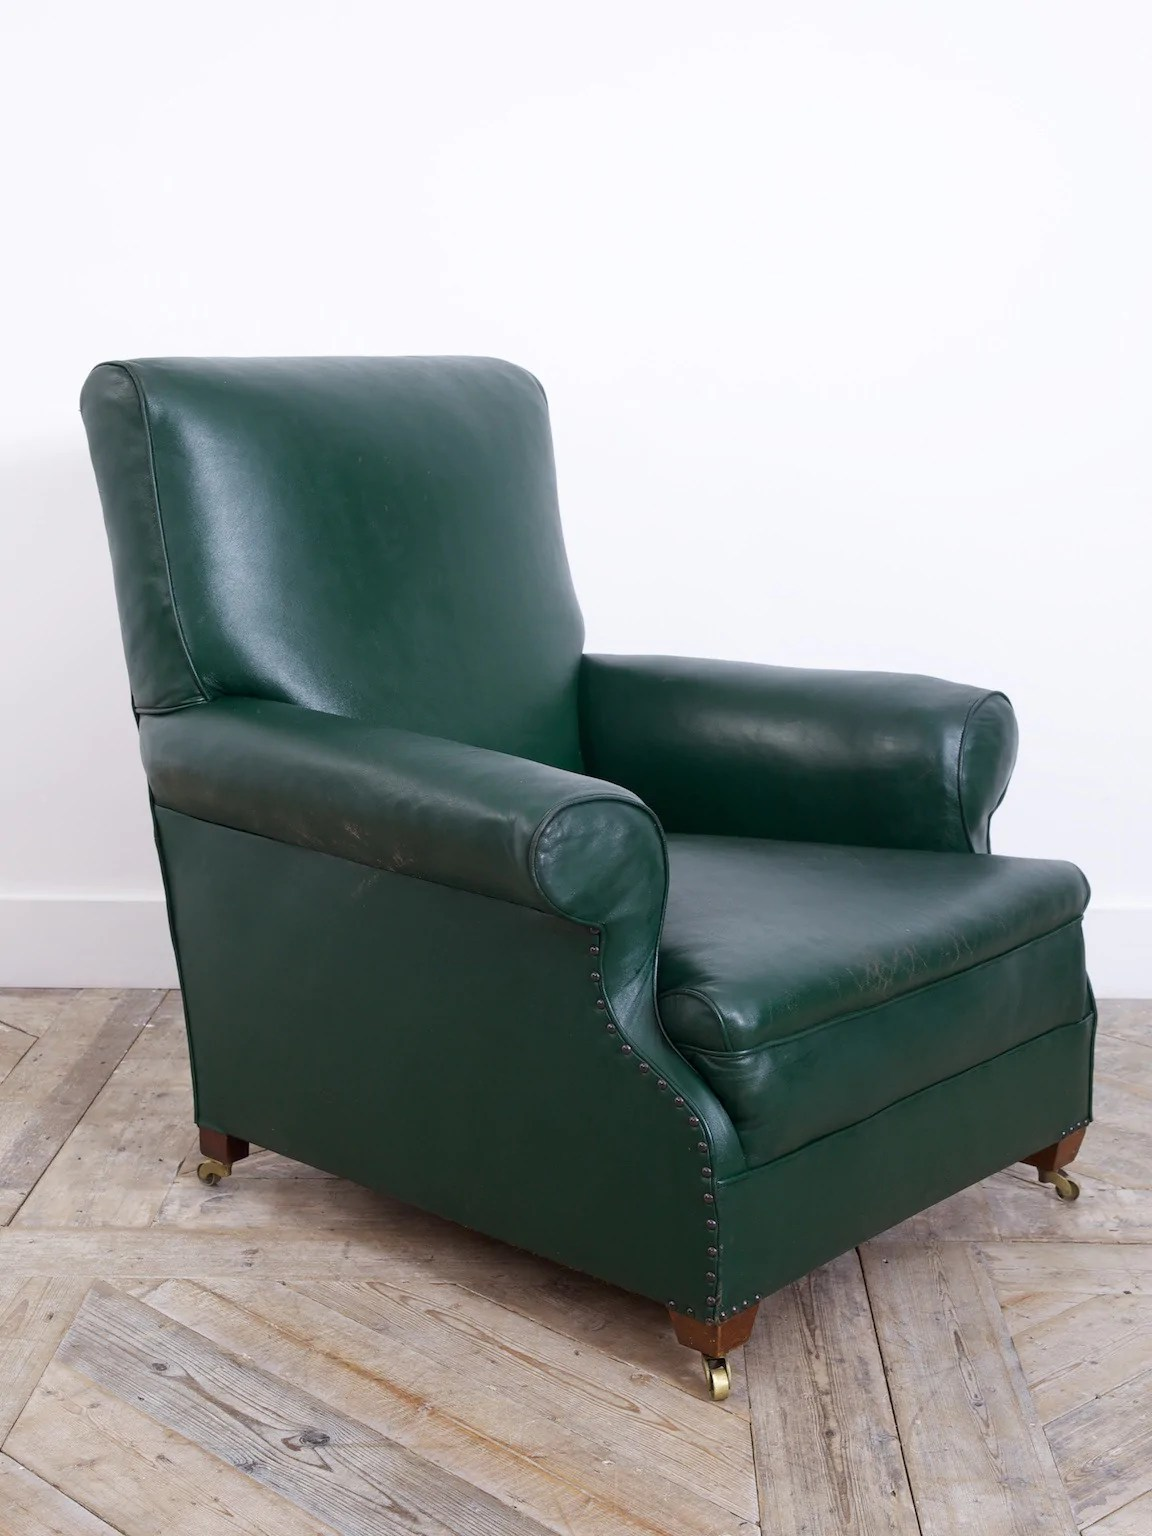 caps for chair legs round swivel sale green leather club – drew pritchard ltd